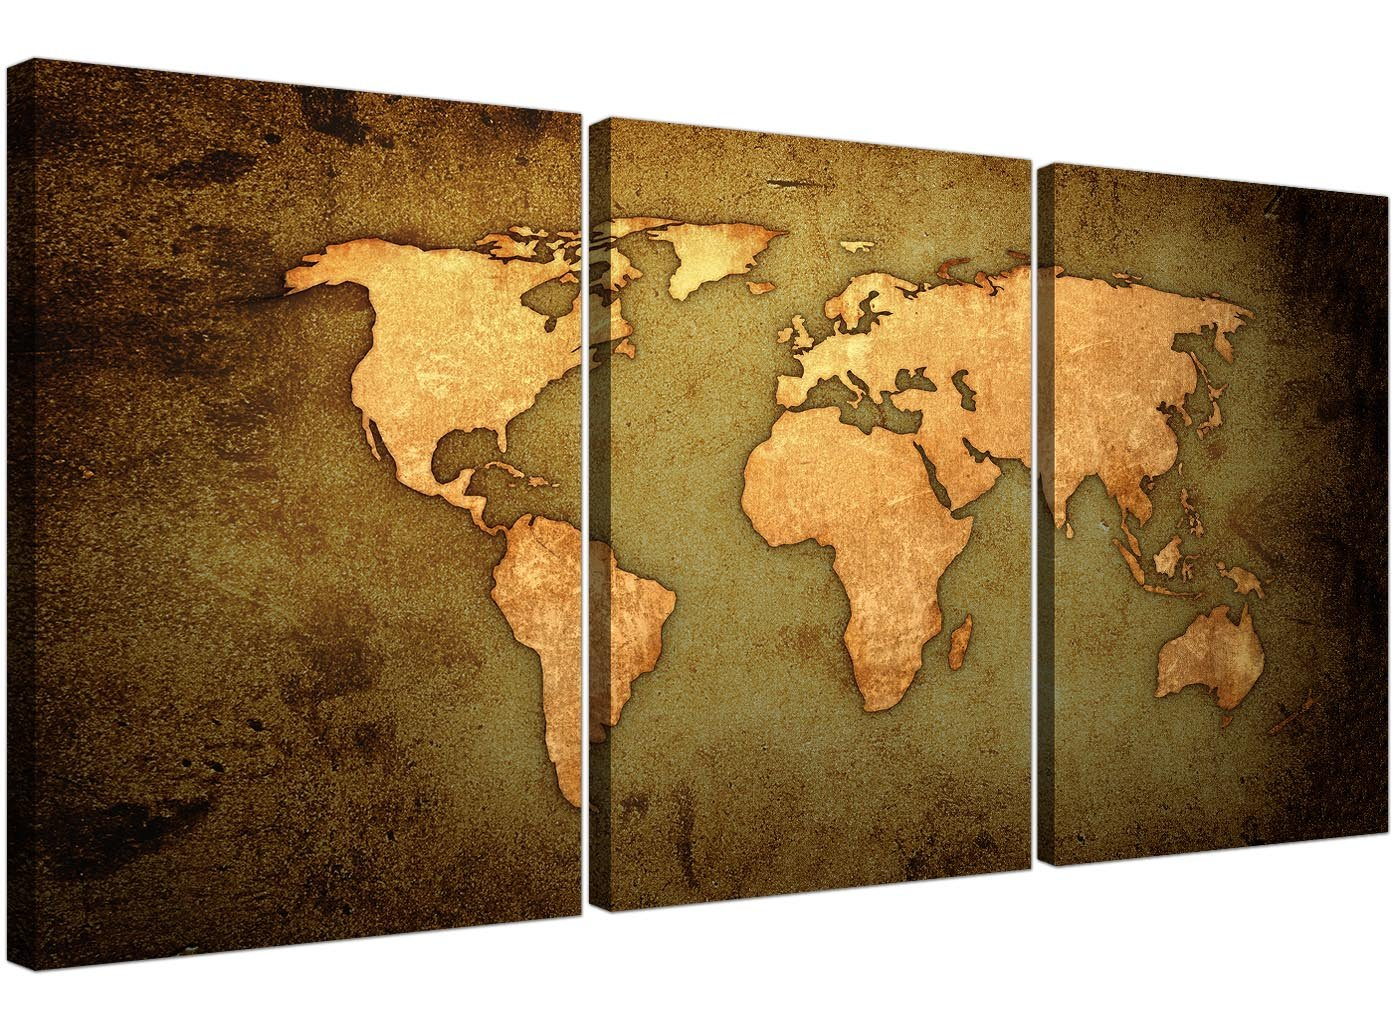 Vintage world map canvas art set of three for your study large vintage world map canvas art set of three for your study large antique effect canvases 3189 wallfillers amazon kitchen home gumiabroncs Image collections